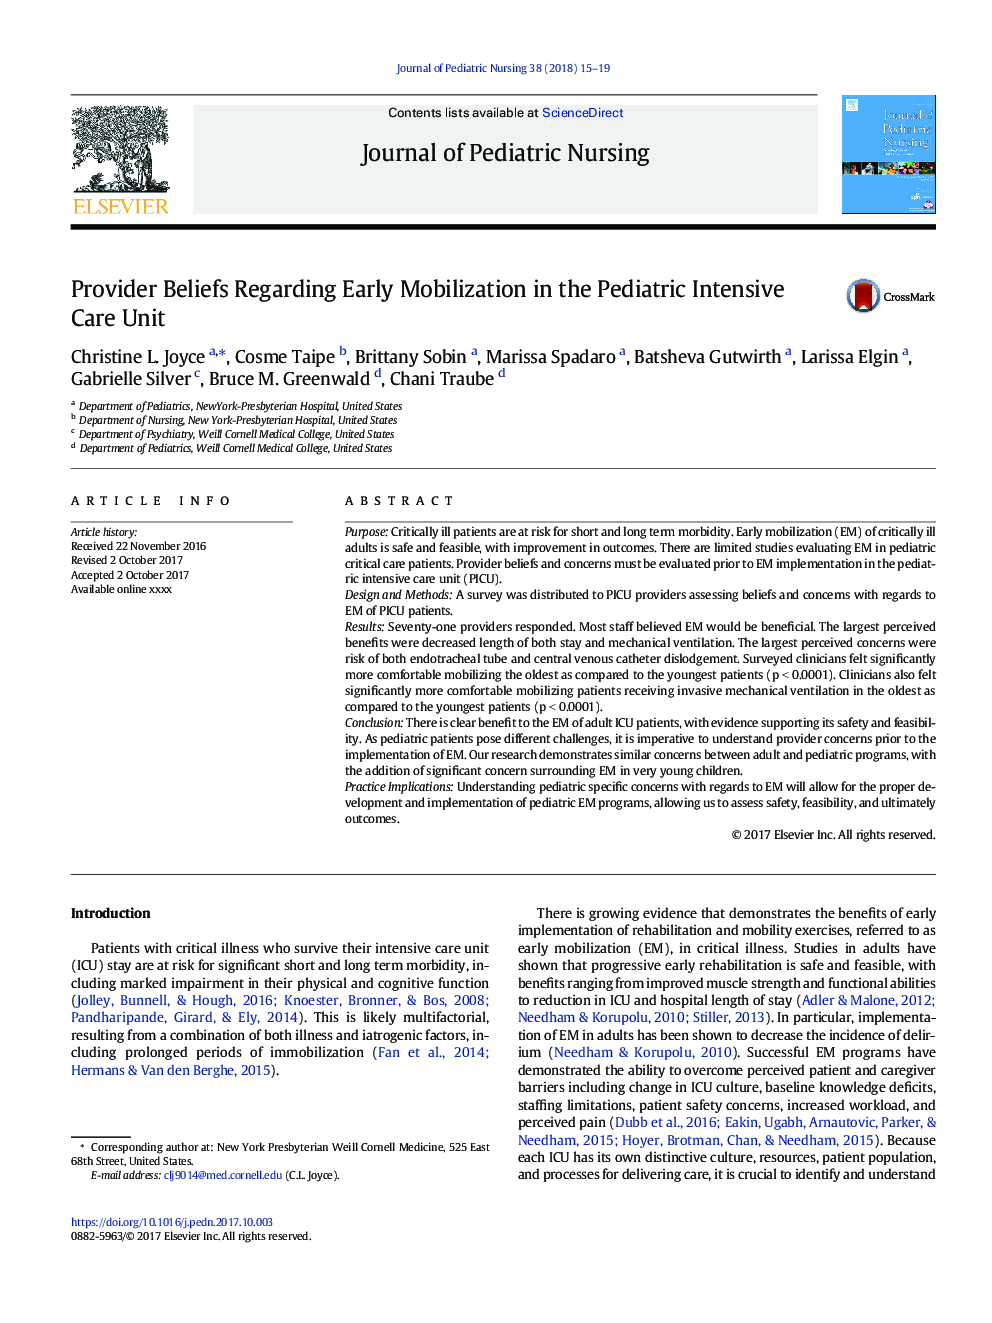 Provider Beliefs Regarding Early Mobilization in the Pediatric Intensive Care Unit